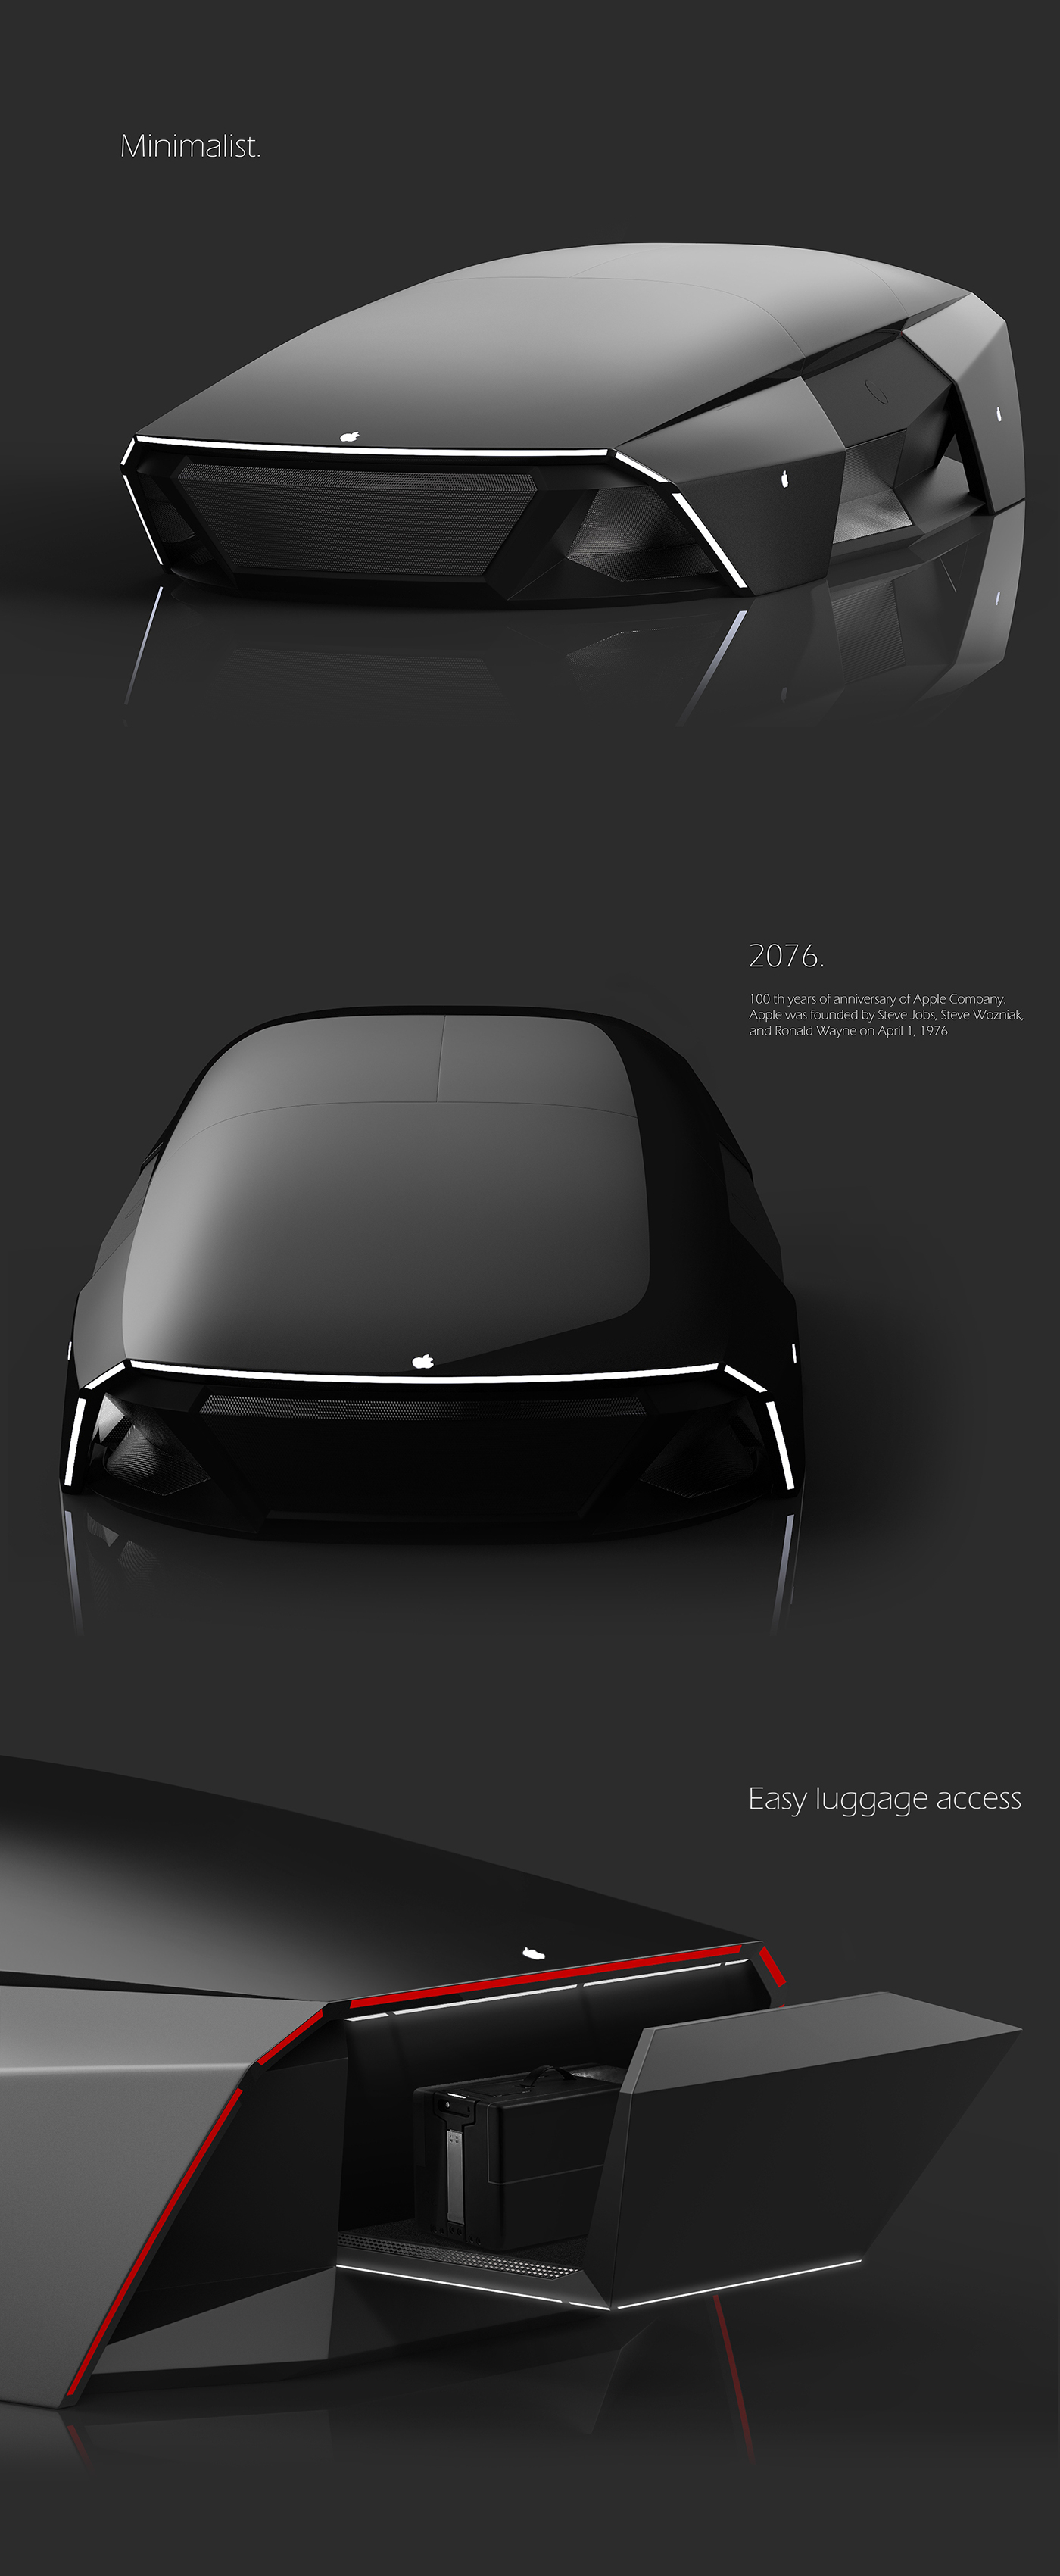 Turkish designer ali cam came up with this for the apple icar framing it as a future concept with a launch date in 2076 100 years after apple s founding